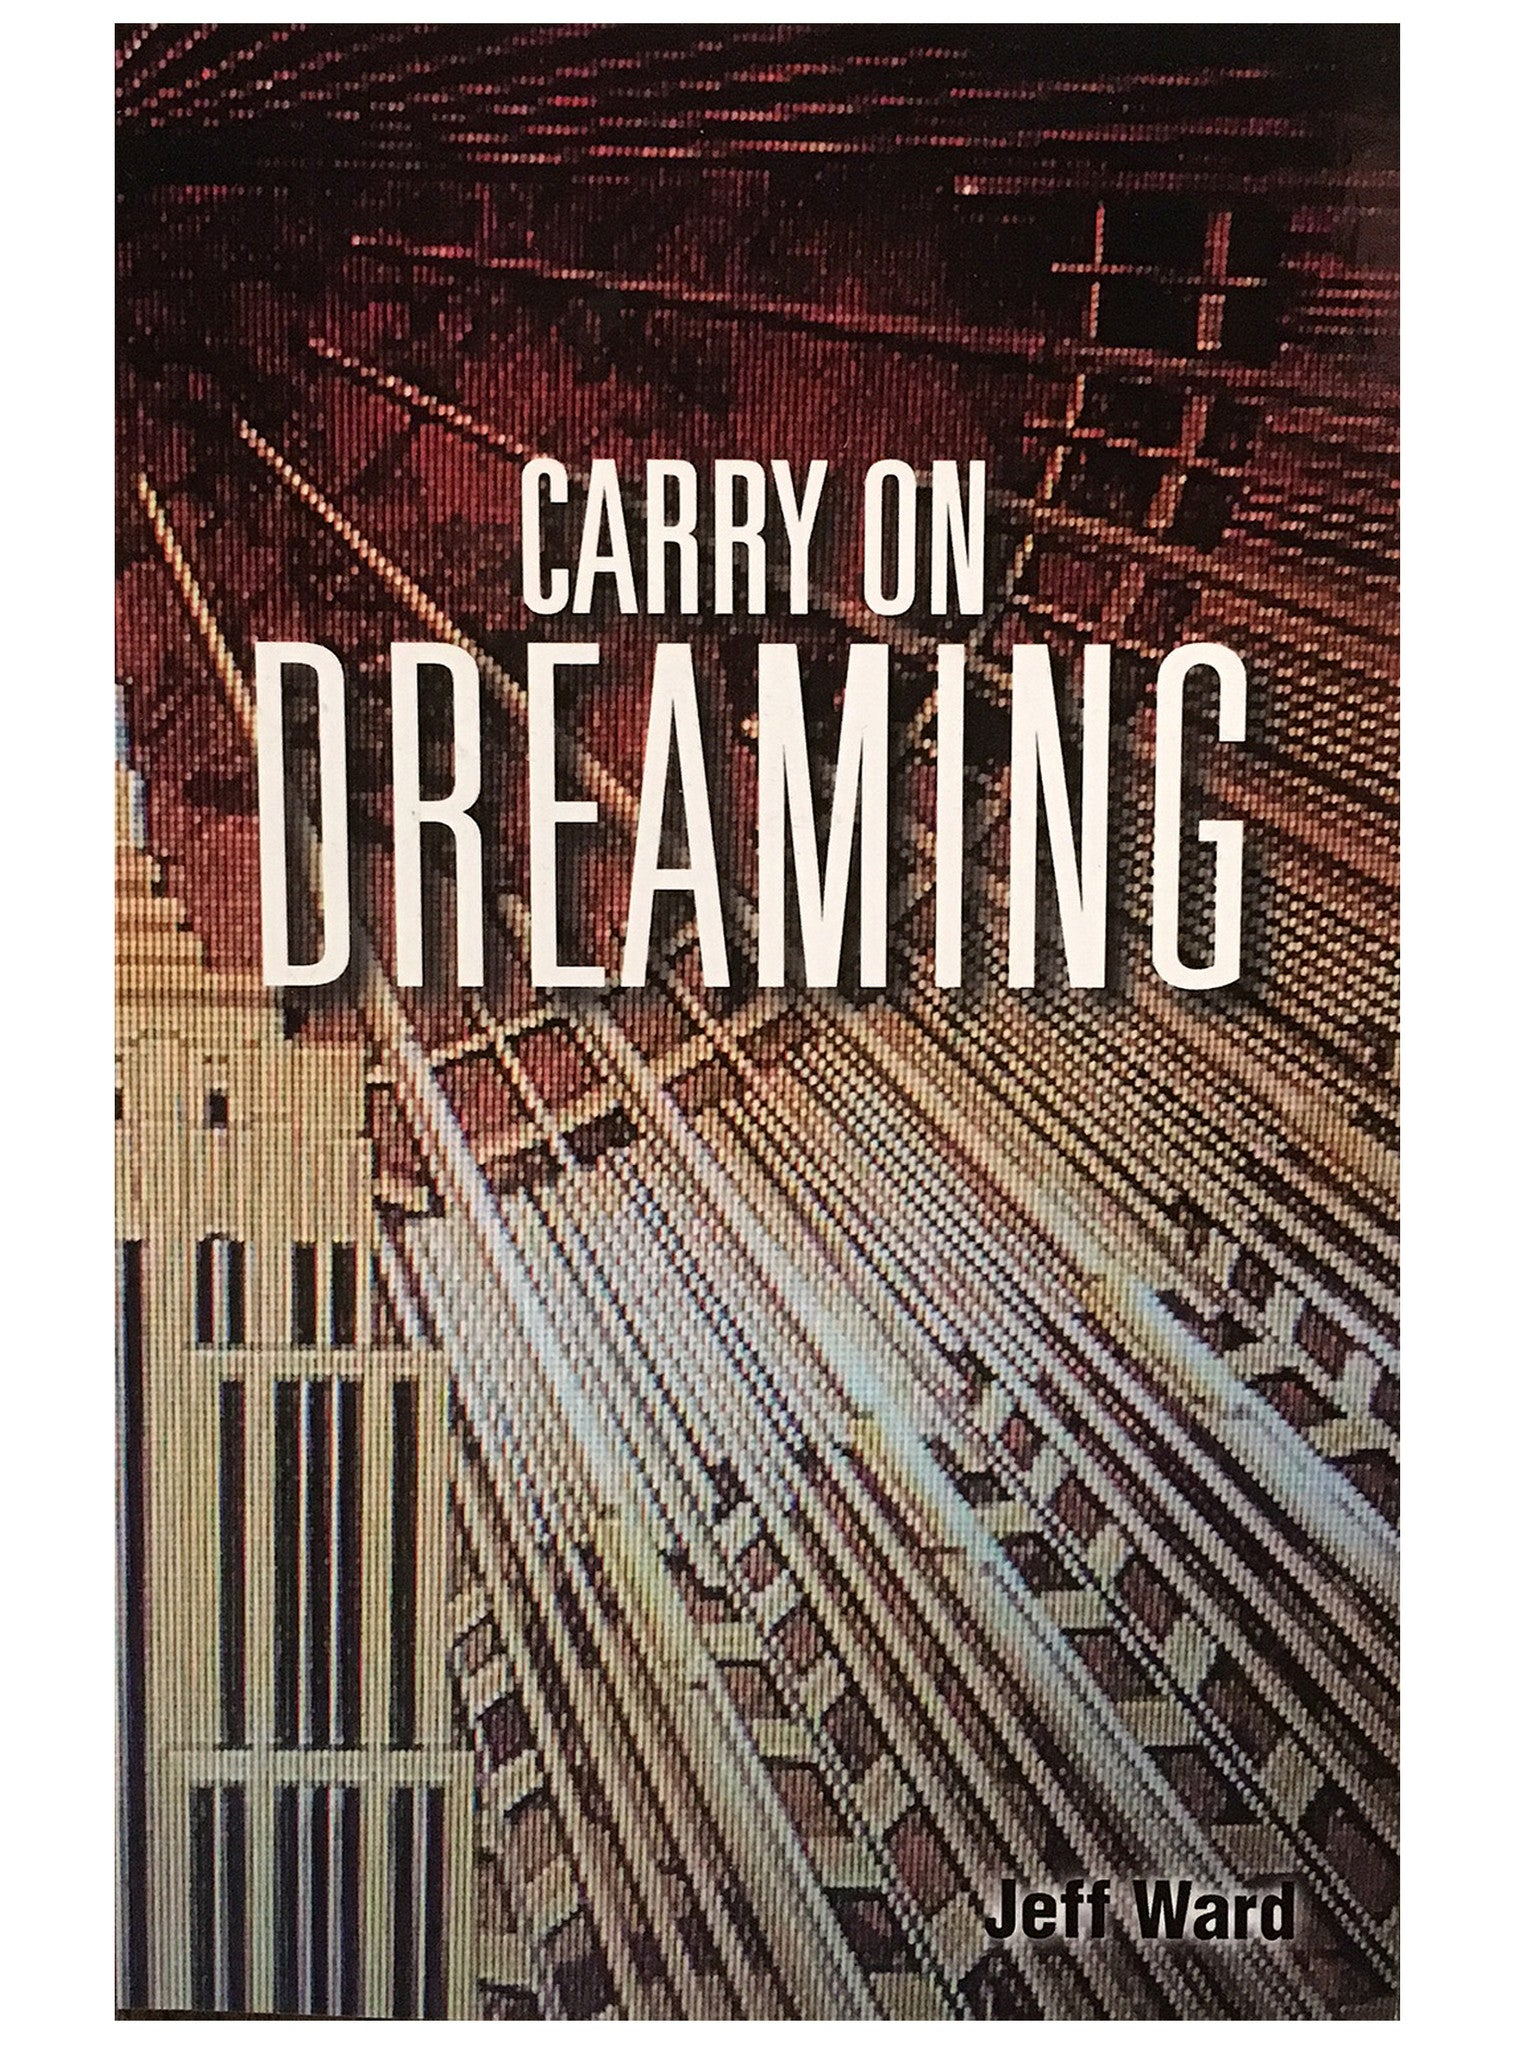 Carry On Dreaming - By Jeff Ward